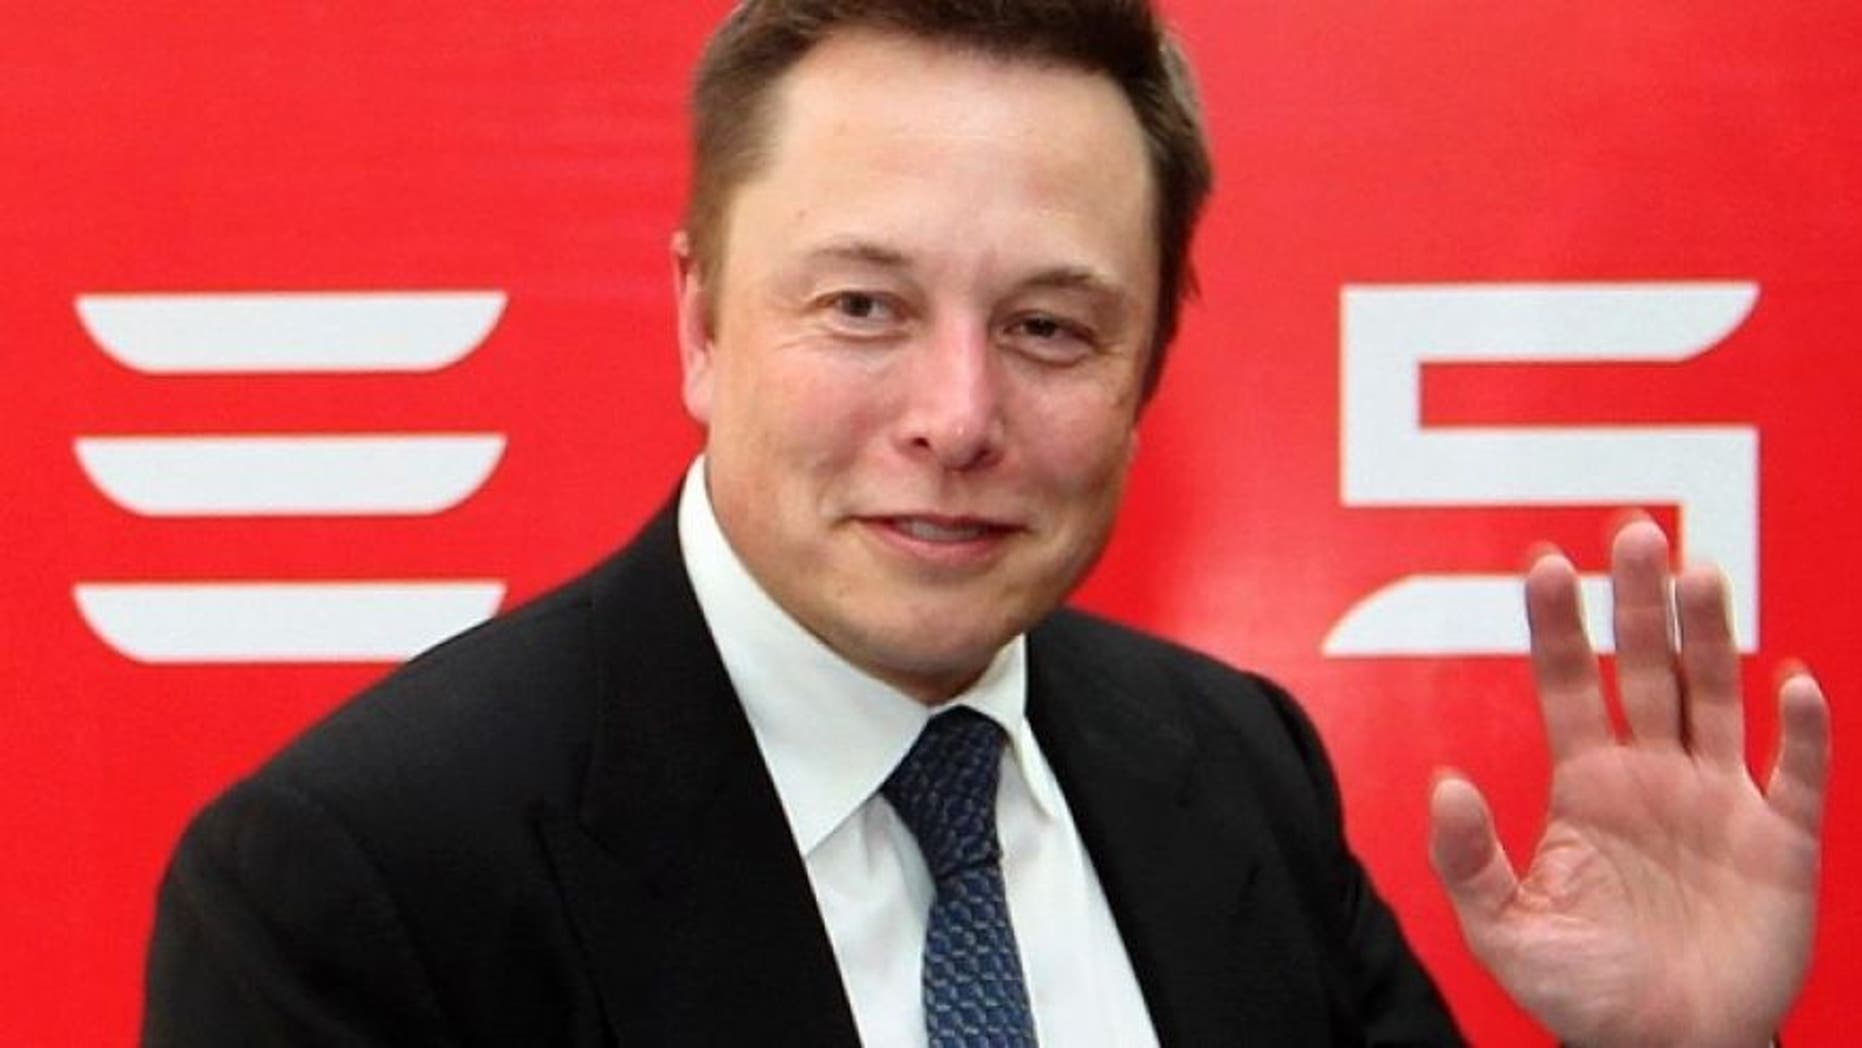 Tesla Chief Executive Elon Musk stands on the podium as he attends a forum on startups in Hong Kong, China January 26, 2016. (REUTERS/Bobby Yip)